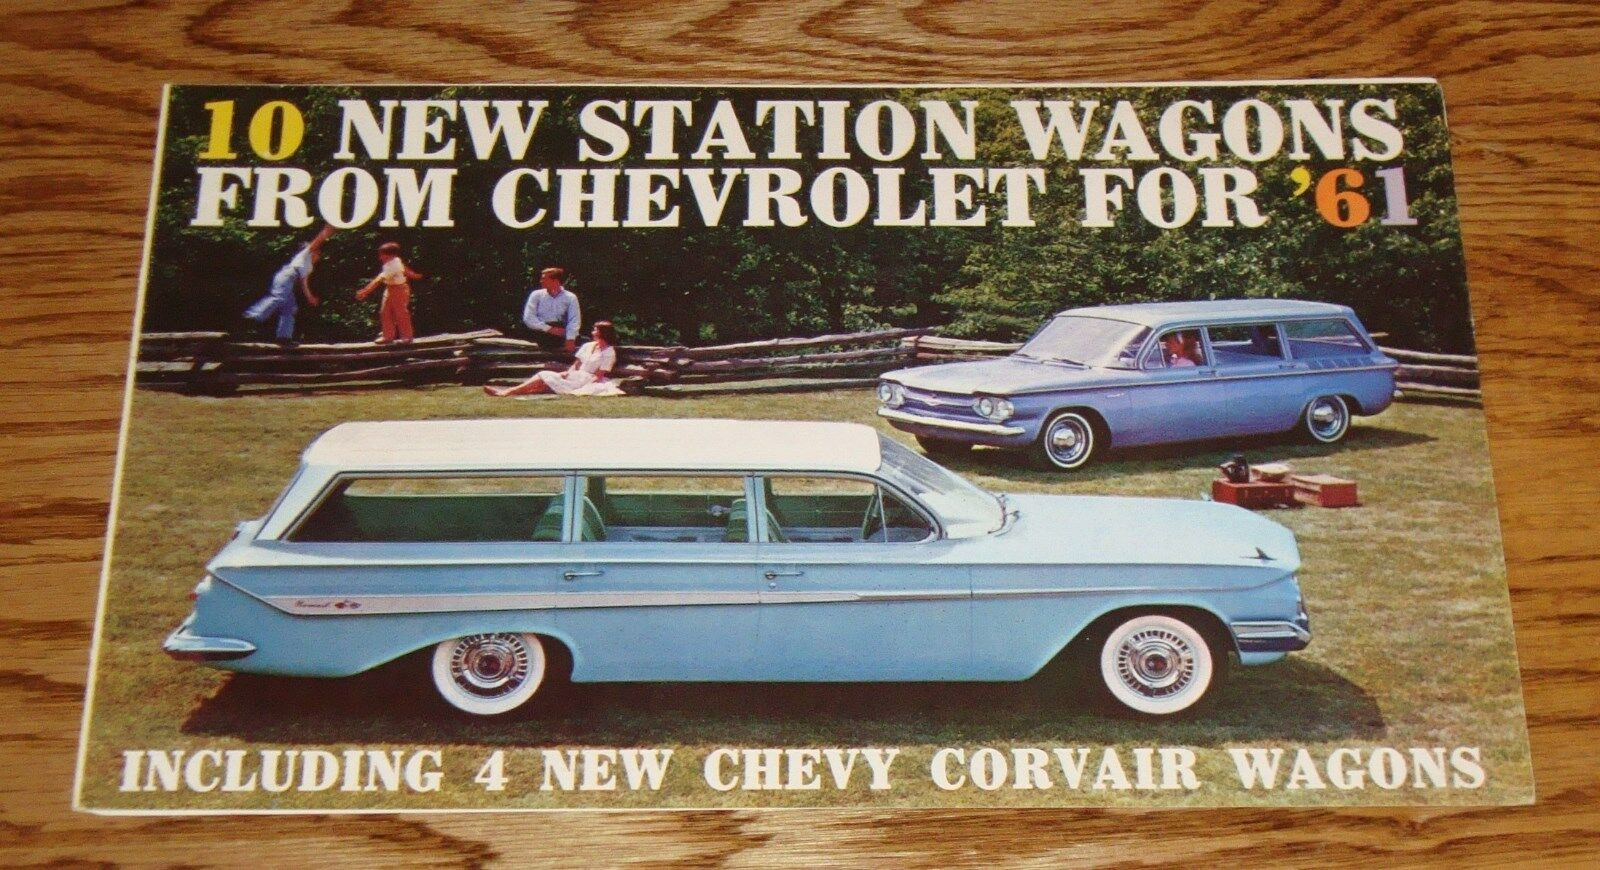 1961 Corvair Lakewood Wiring Diagram Schematic Diagrams Chrysler Orig Chevrolet Station Wagons Sales Brochure 61 Nomad Parkwood 1 Of